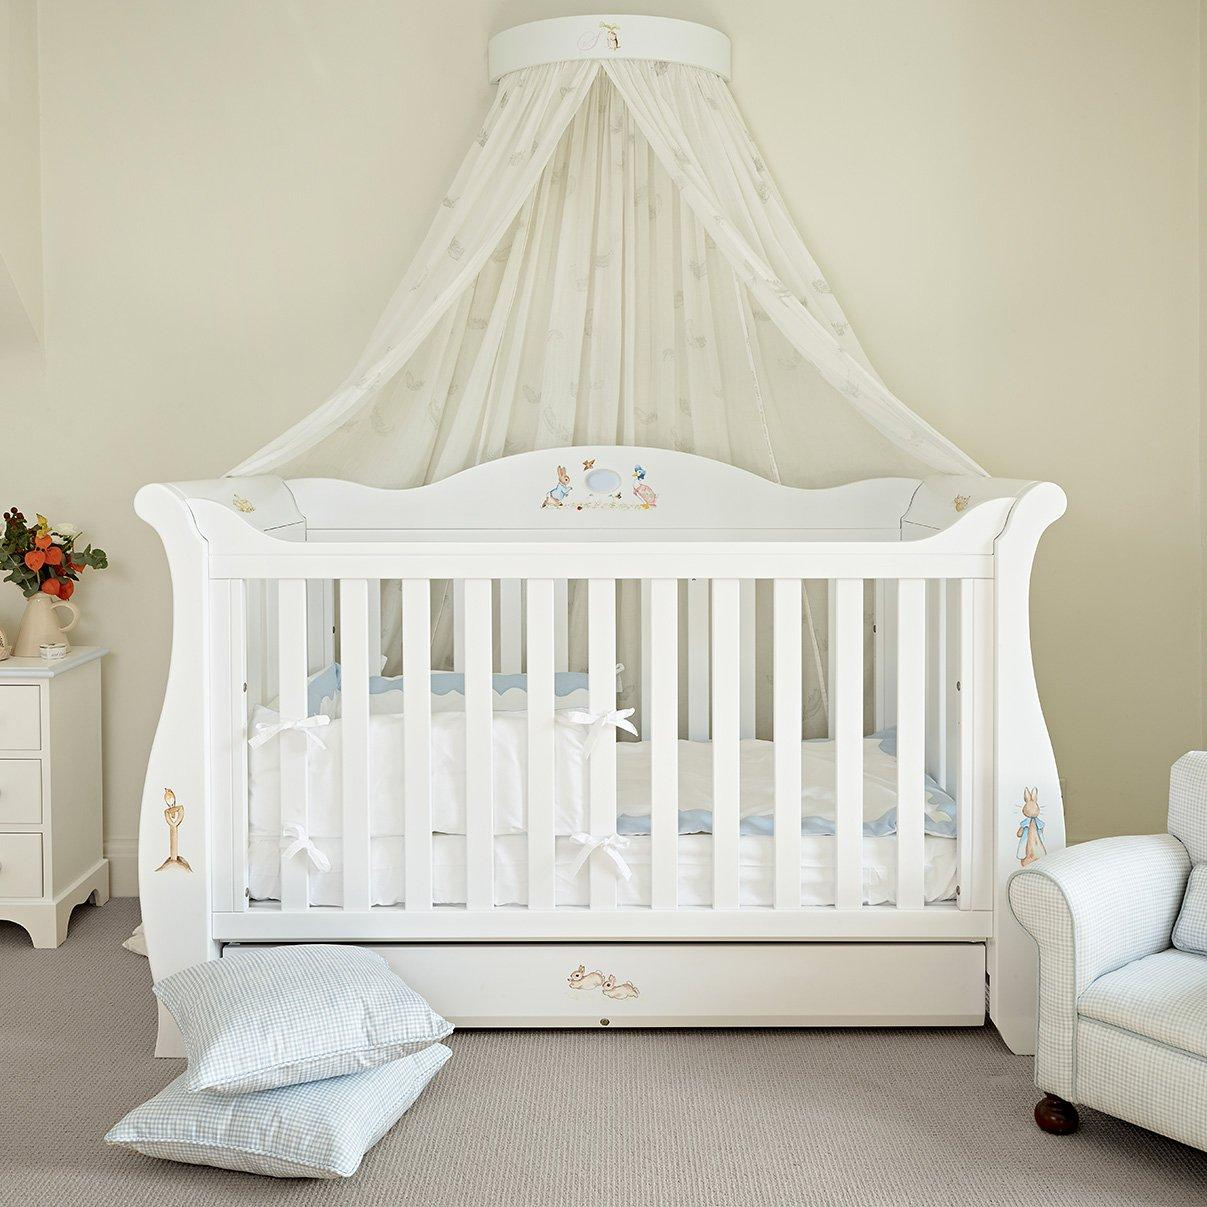 Kids white wooden sleigh cot bed with Peter Rabbit hand paintings